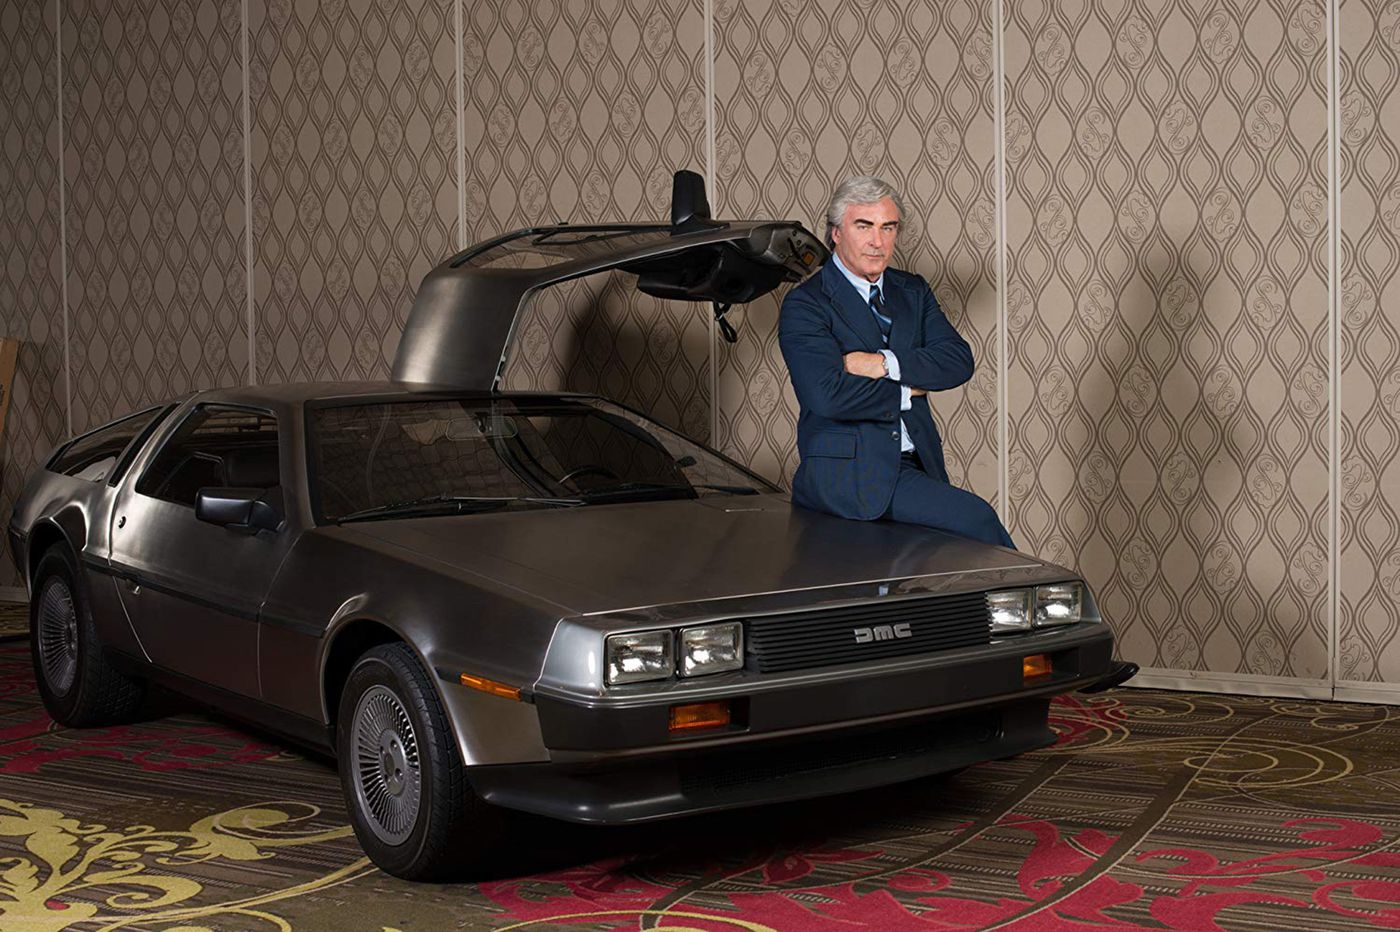 Philadelphia filmmakers go under the hood in 'Framing John DeLorean' with Alec Baldwin as the notorious automaker